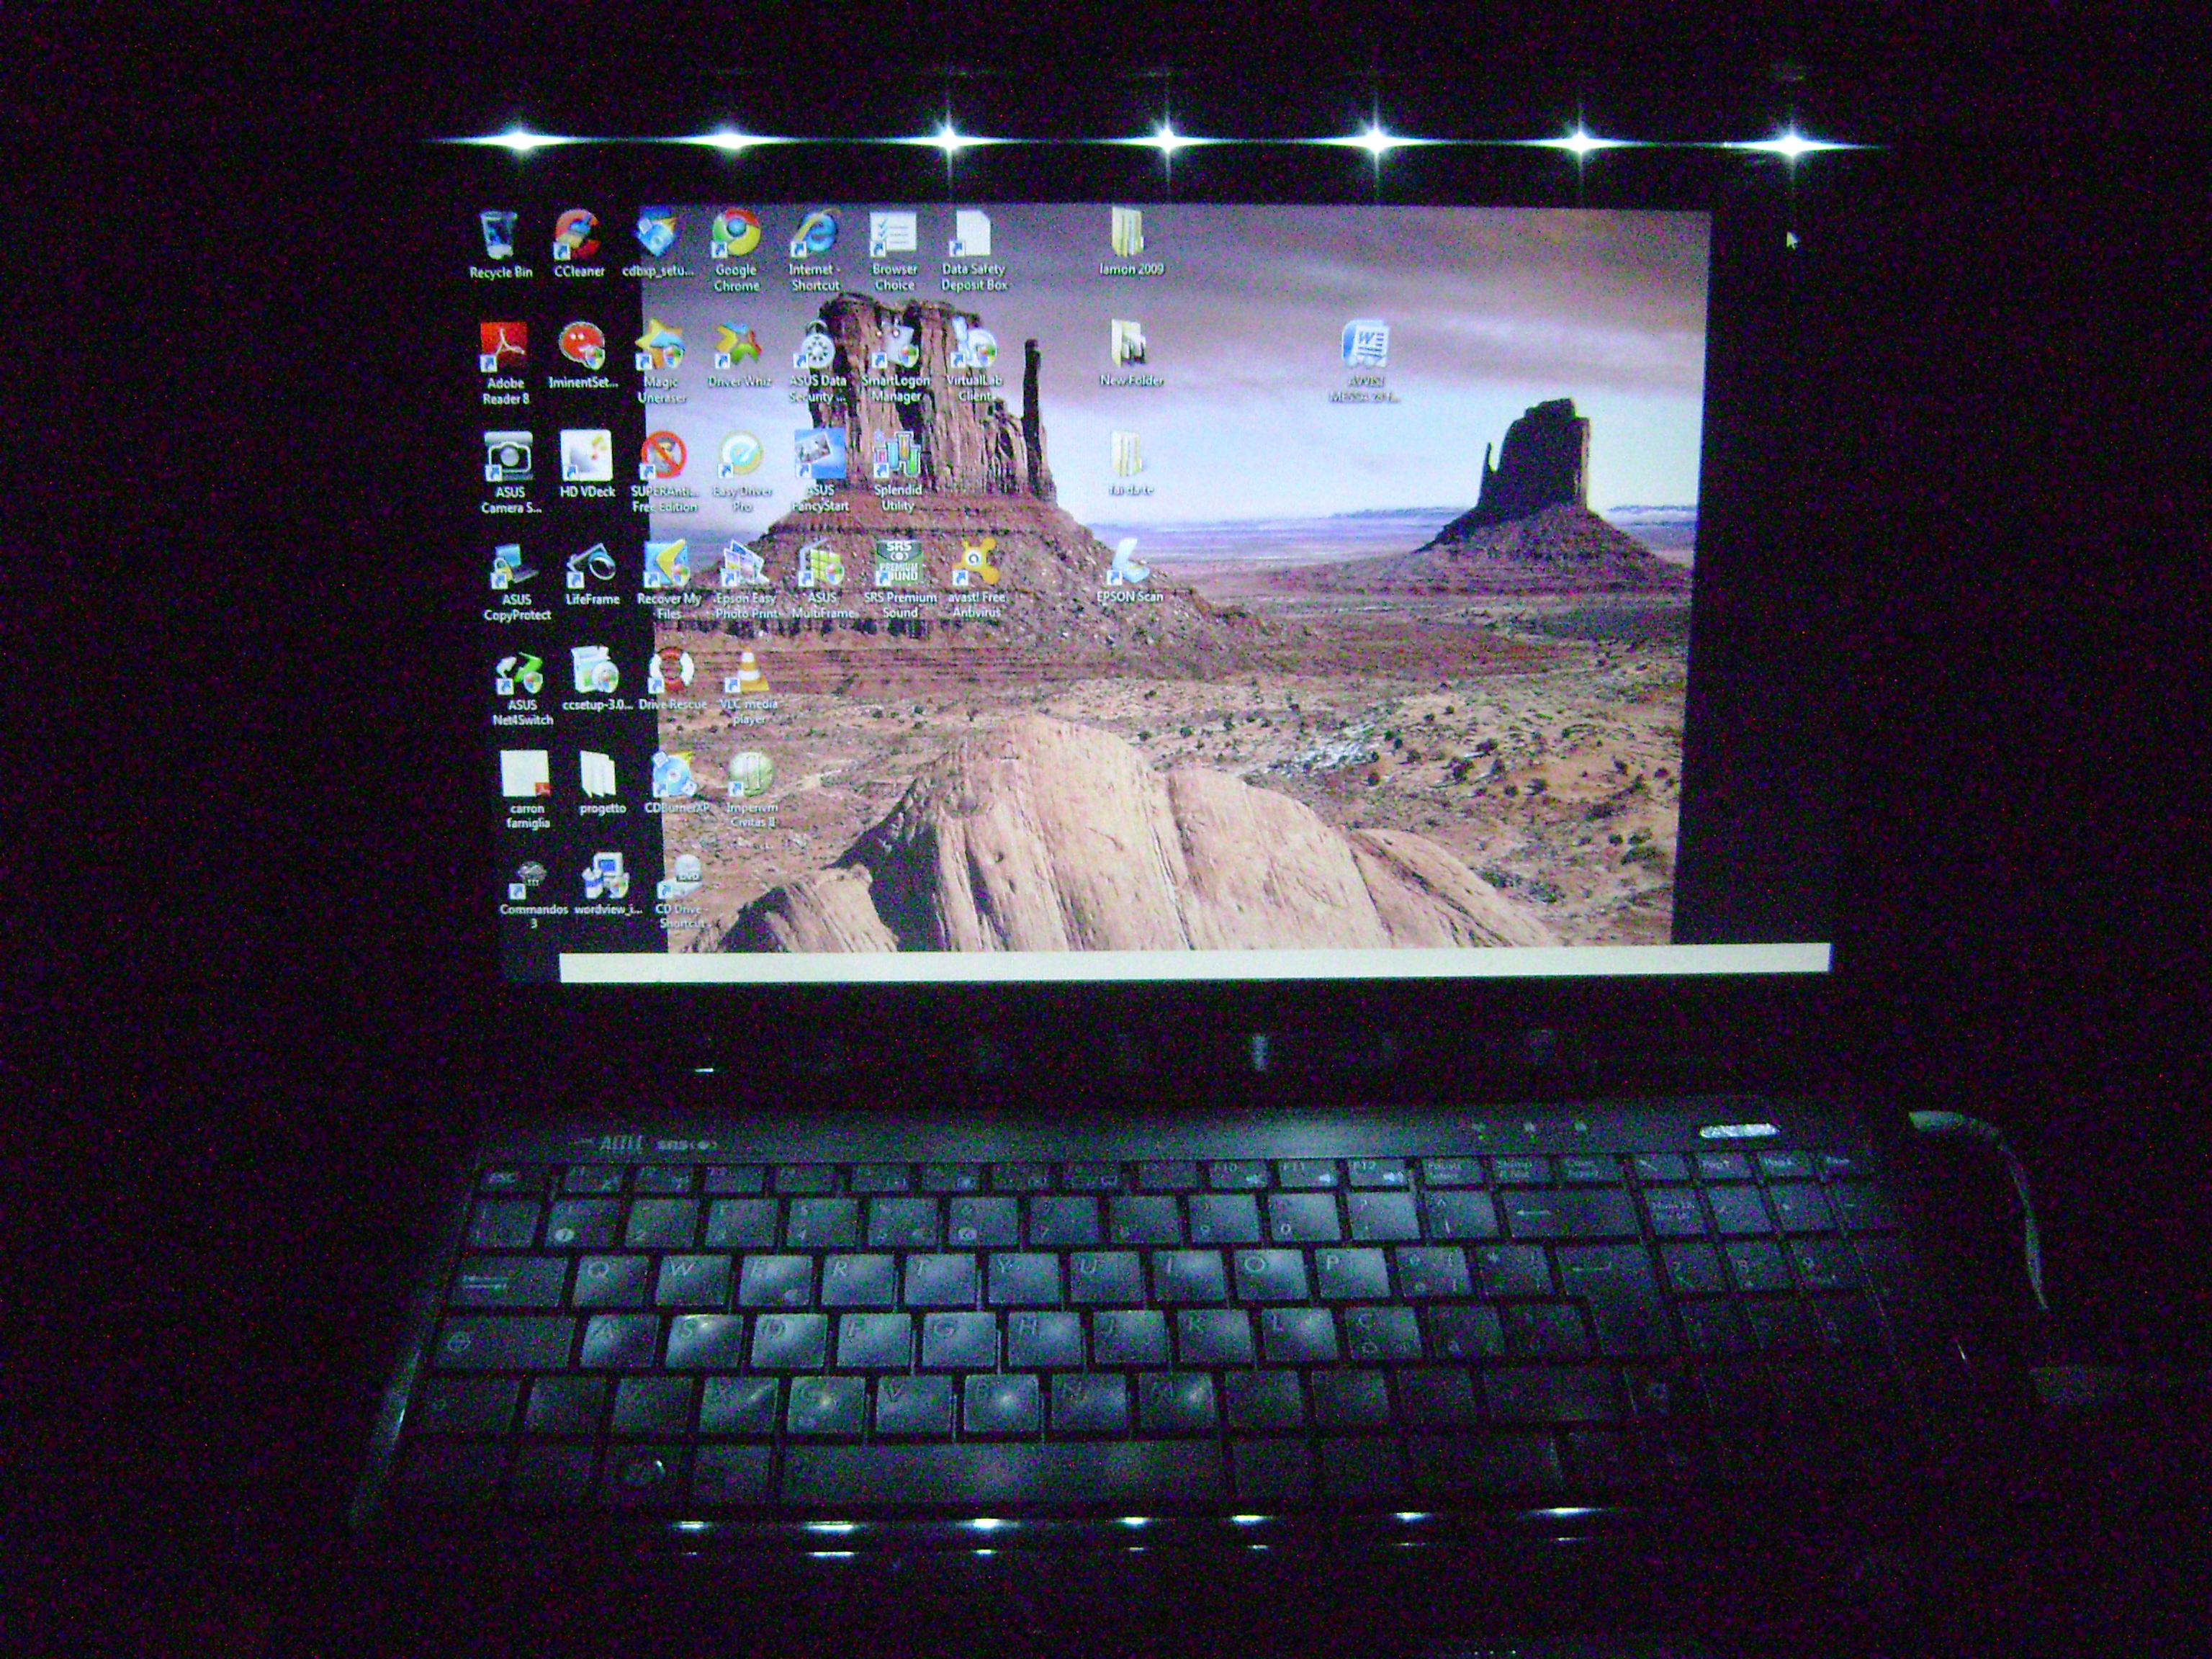 Picture of Nightlight Led Laptop 1.2 Version.